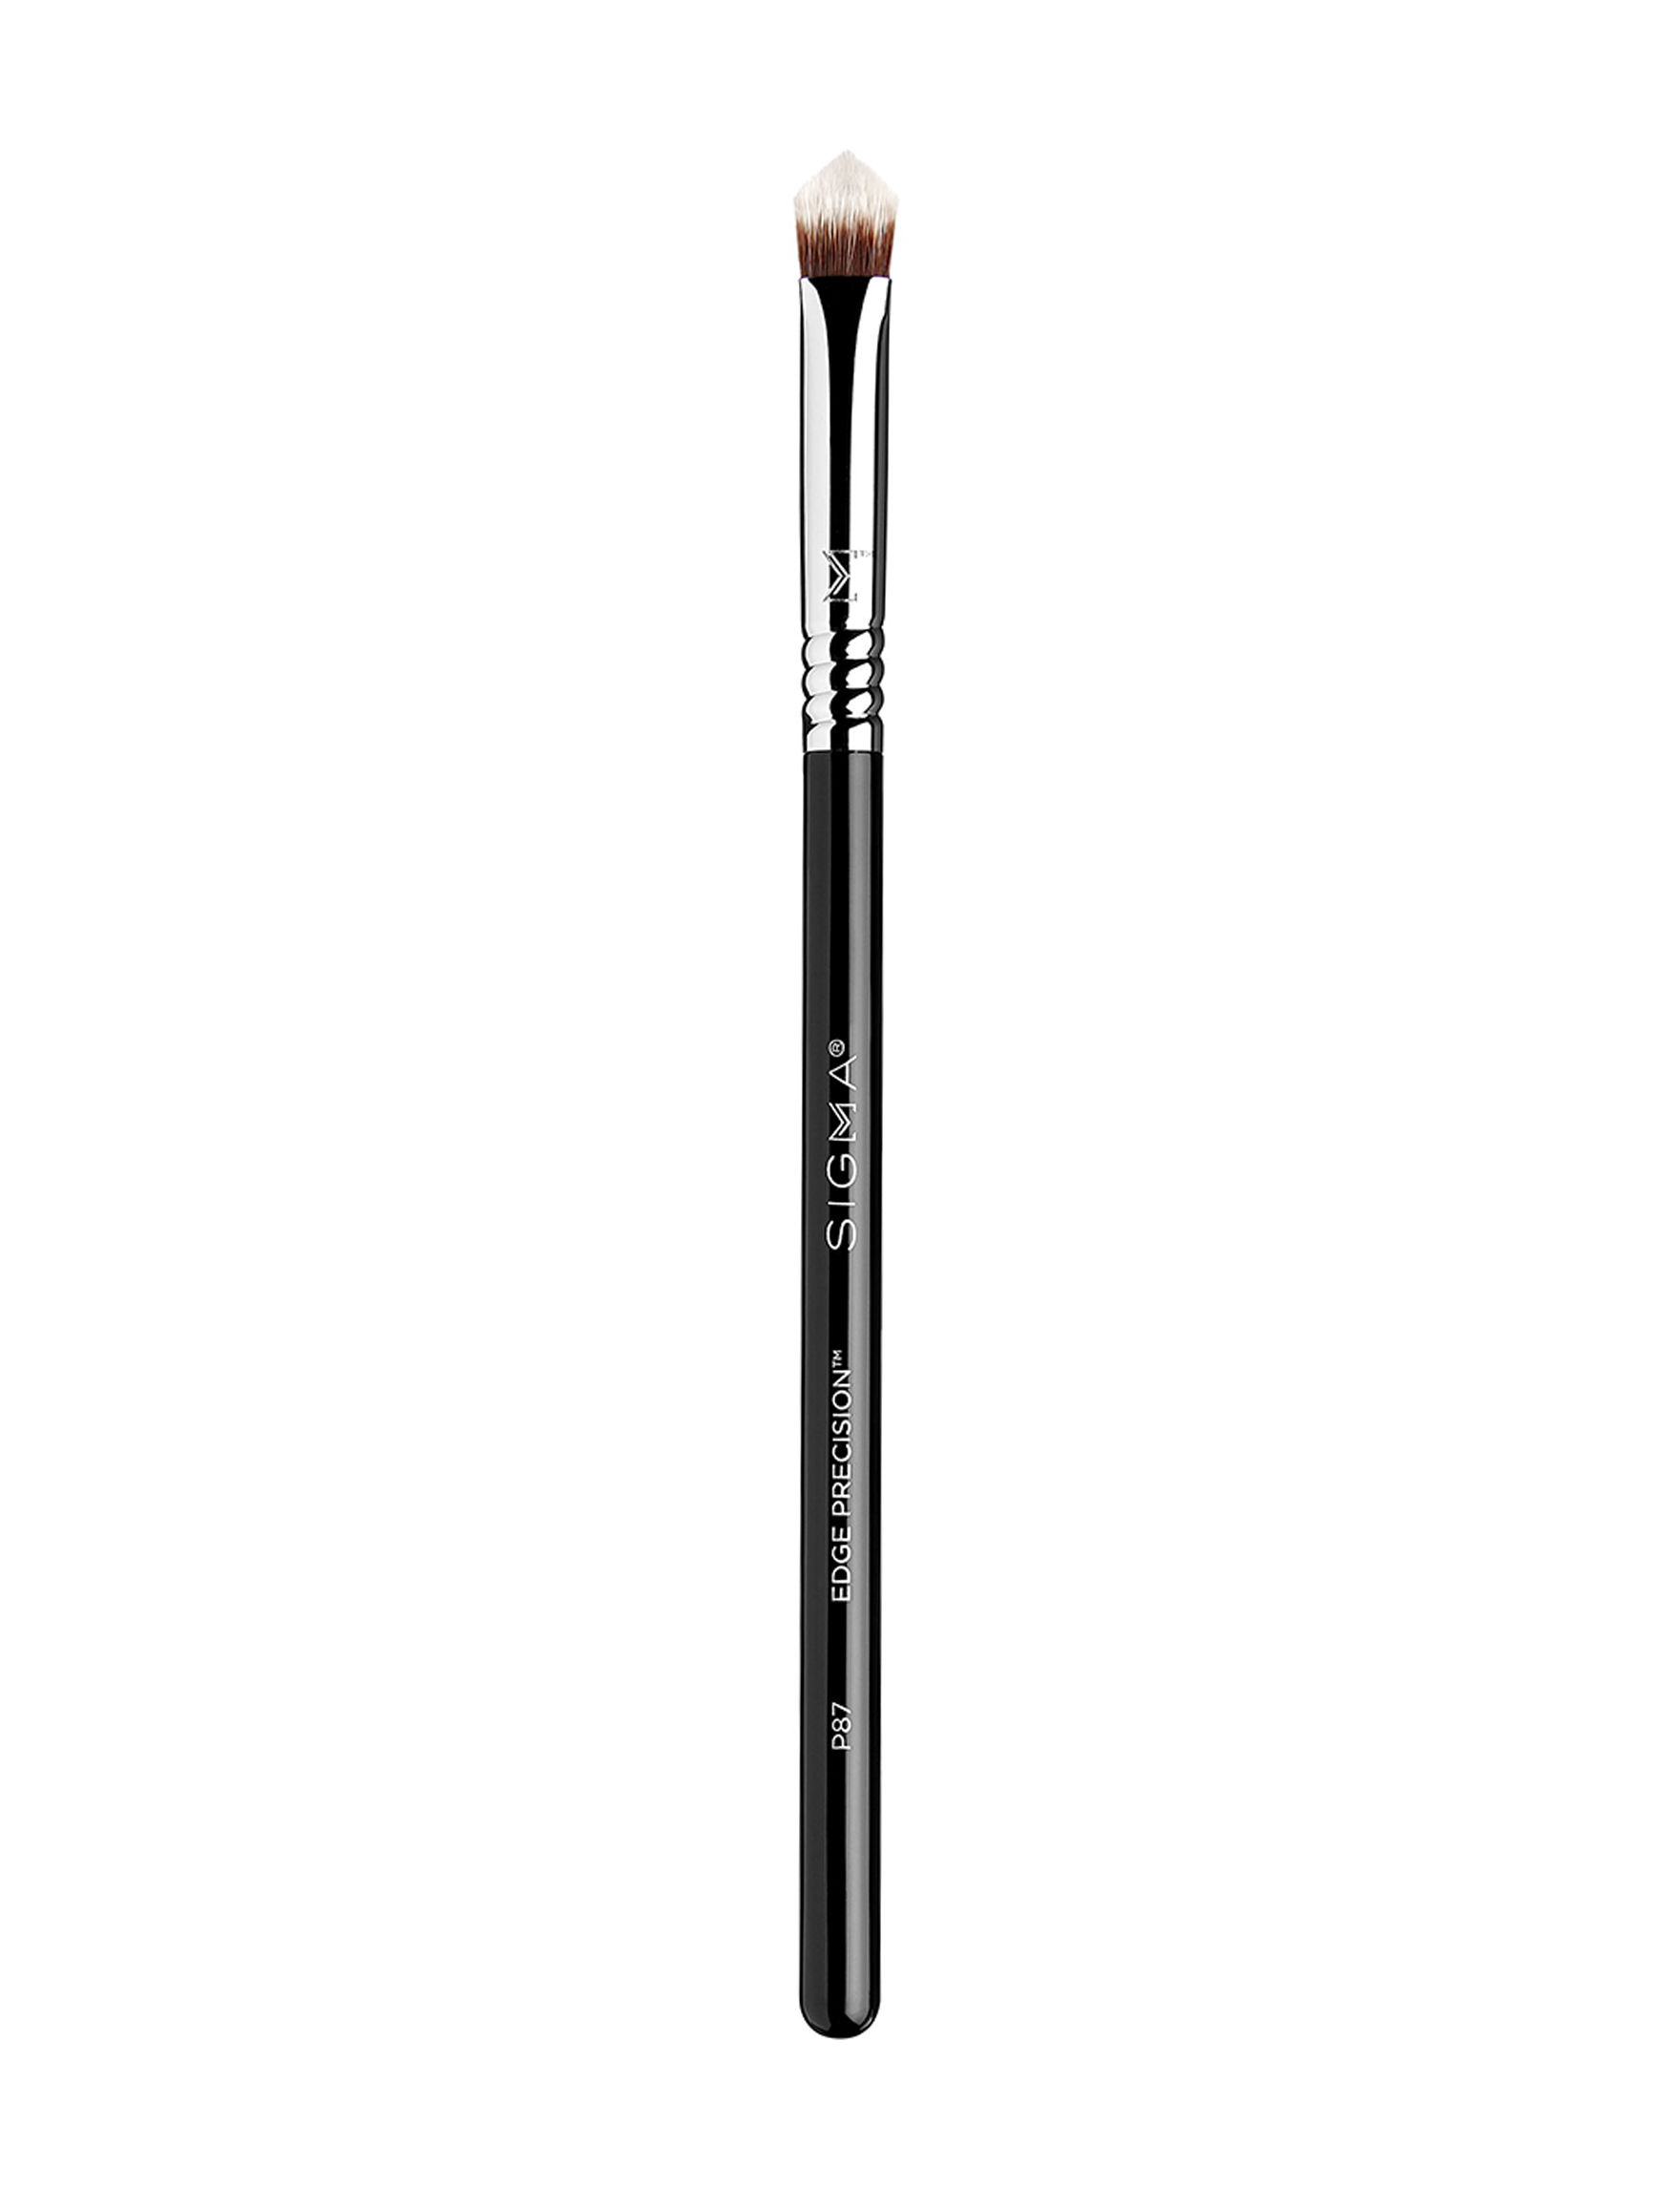 Sigma  Eyes Face Tools & Brushes Blush Brushes Bronzer Brushes Concealer Brushes Eyebrow & Eyelash Tools Eyeliner Brushes Eyeshadow Brushes Foundation Brushes Powder Brushes